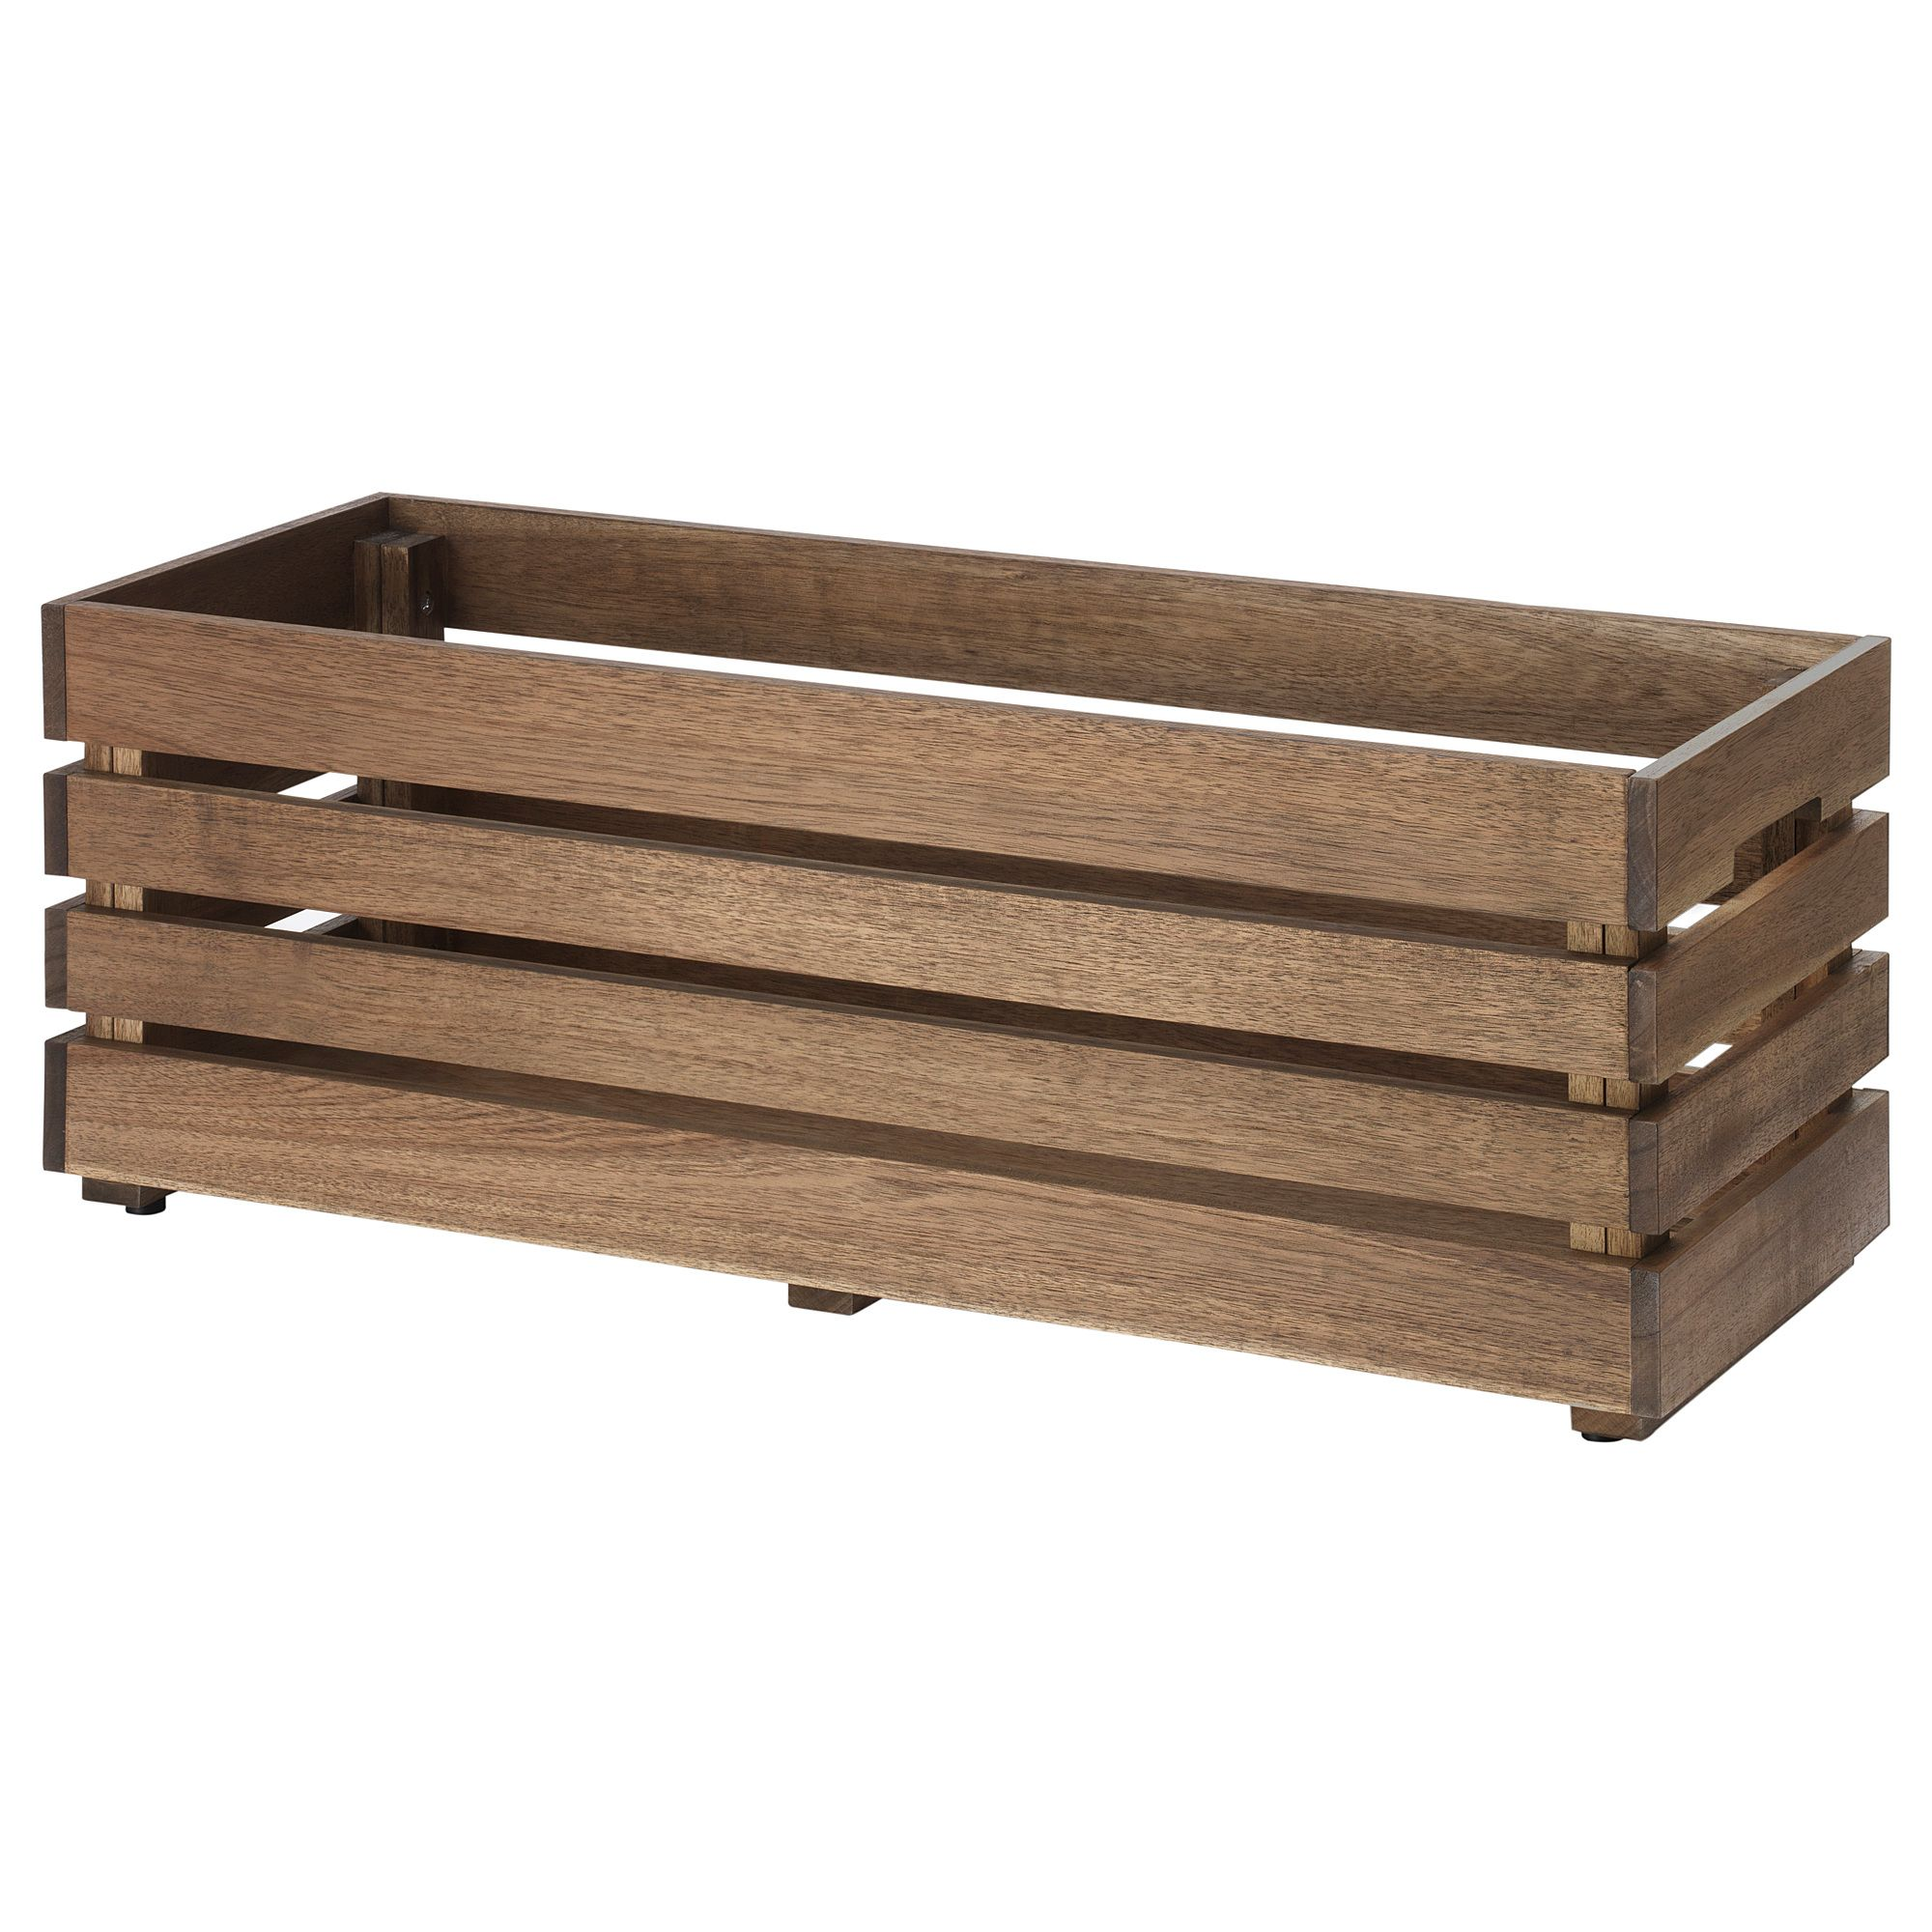 Ikea Hollywoodschaukel Sommar 2018 Flower Box Ikea Length 29 ½